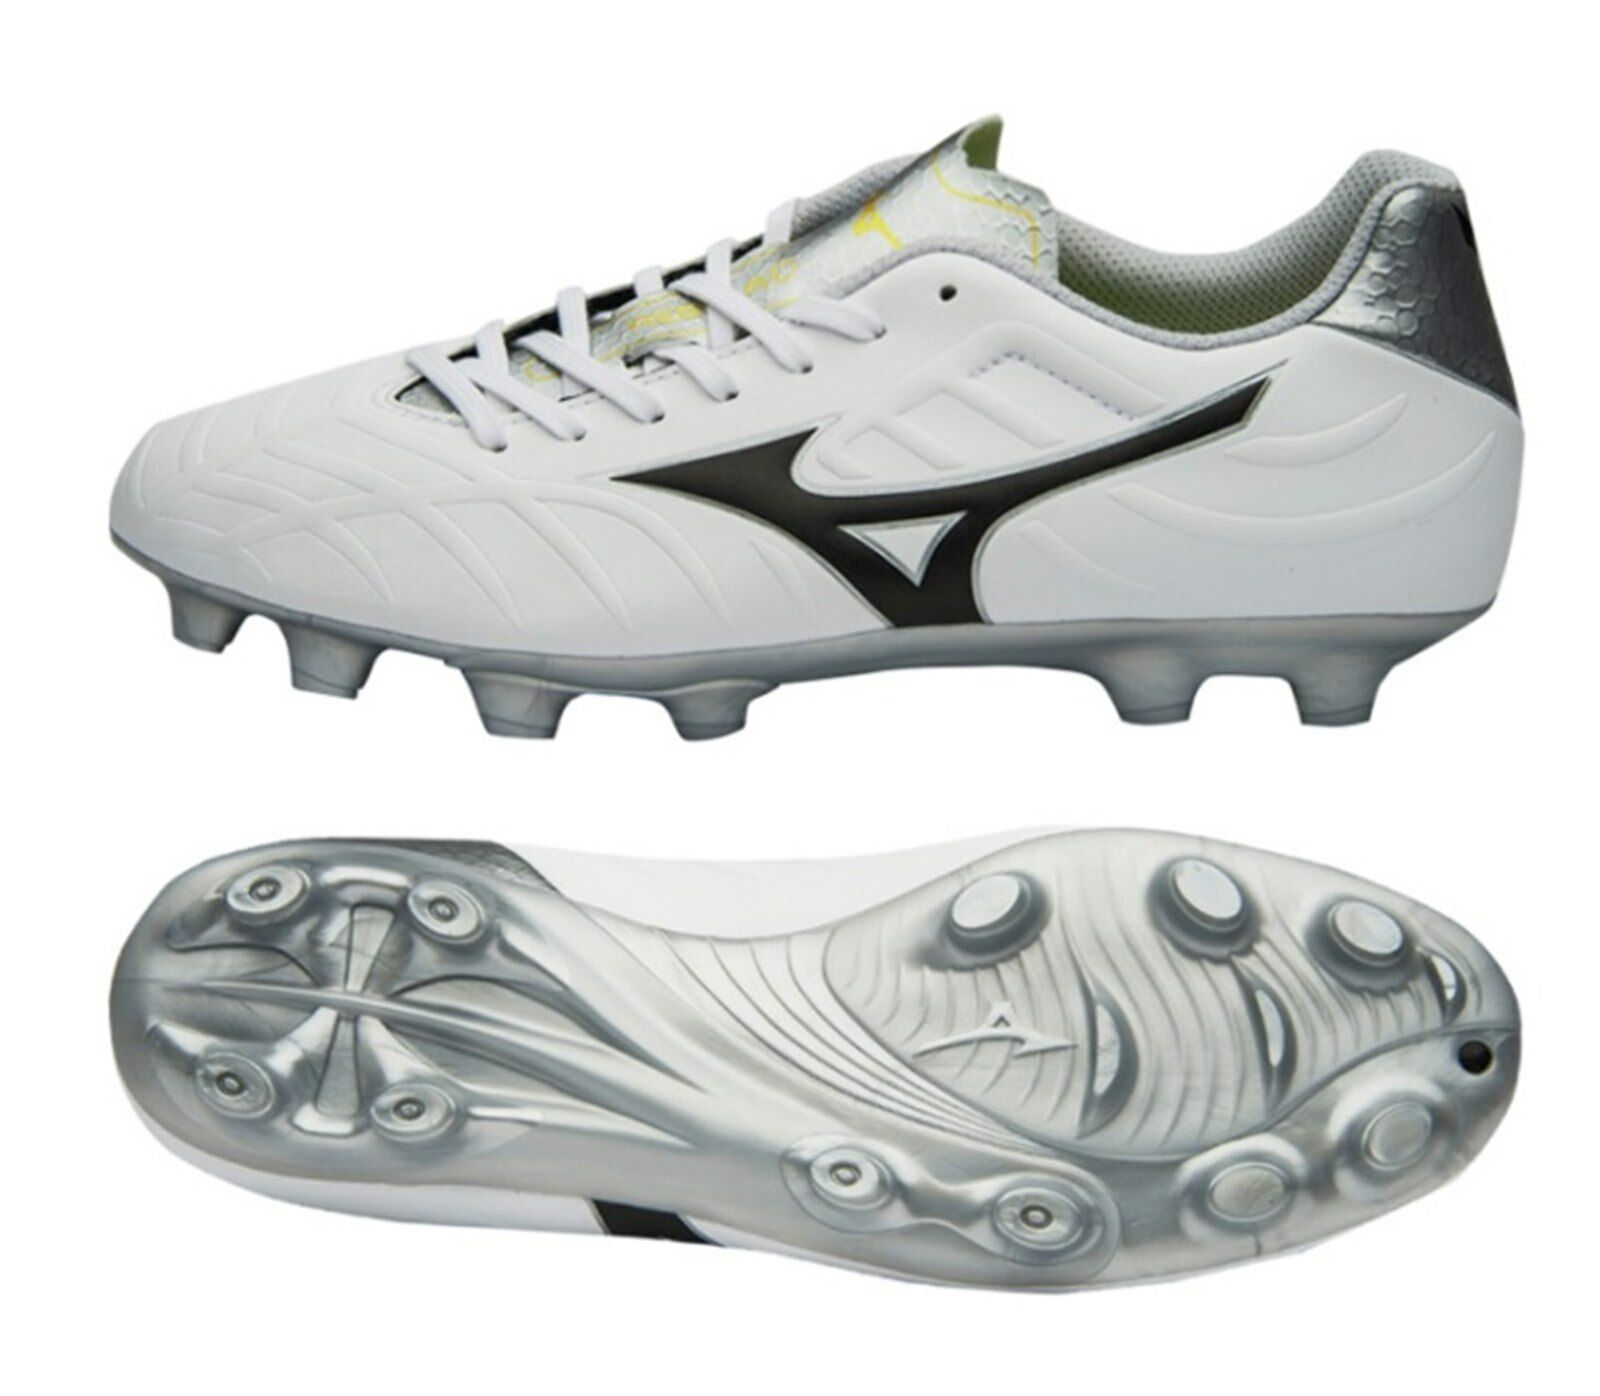 Mizuno Men Rebula V3 MD Cleats Soccer Football Spike Weiß Schuhes Stiefel Spike Football P1GA188509 89fafd